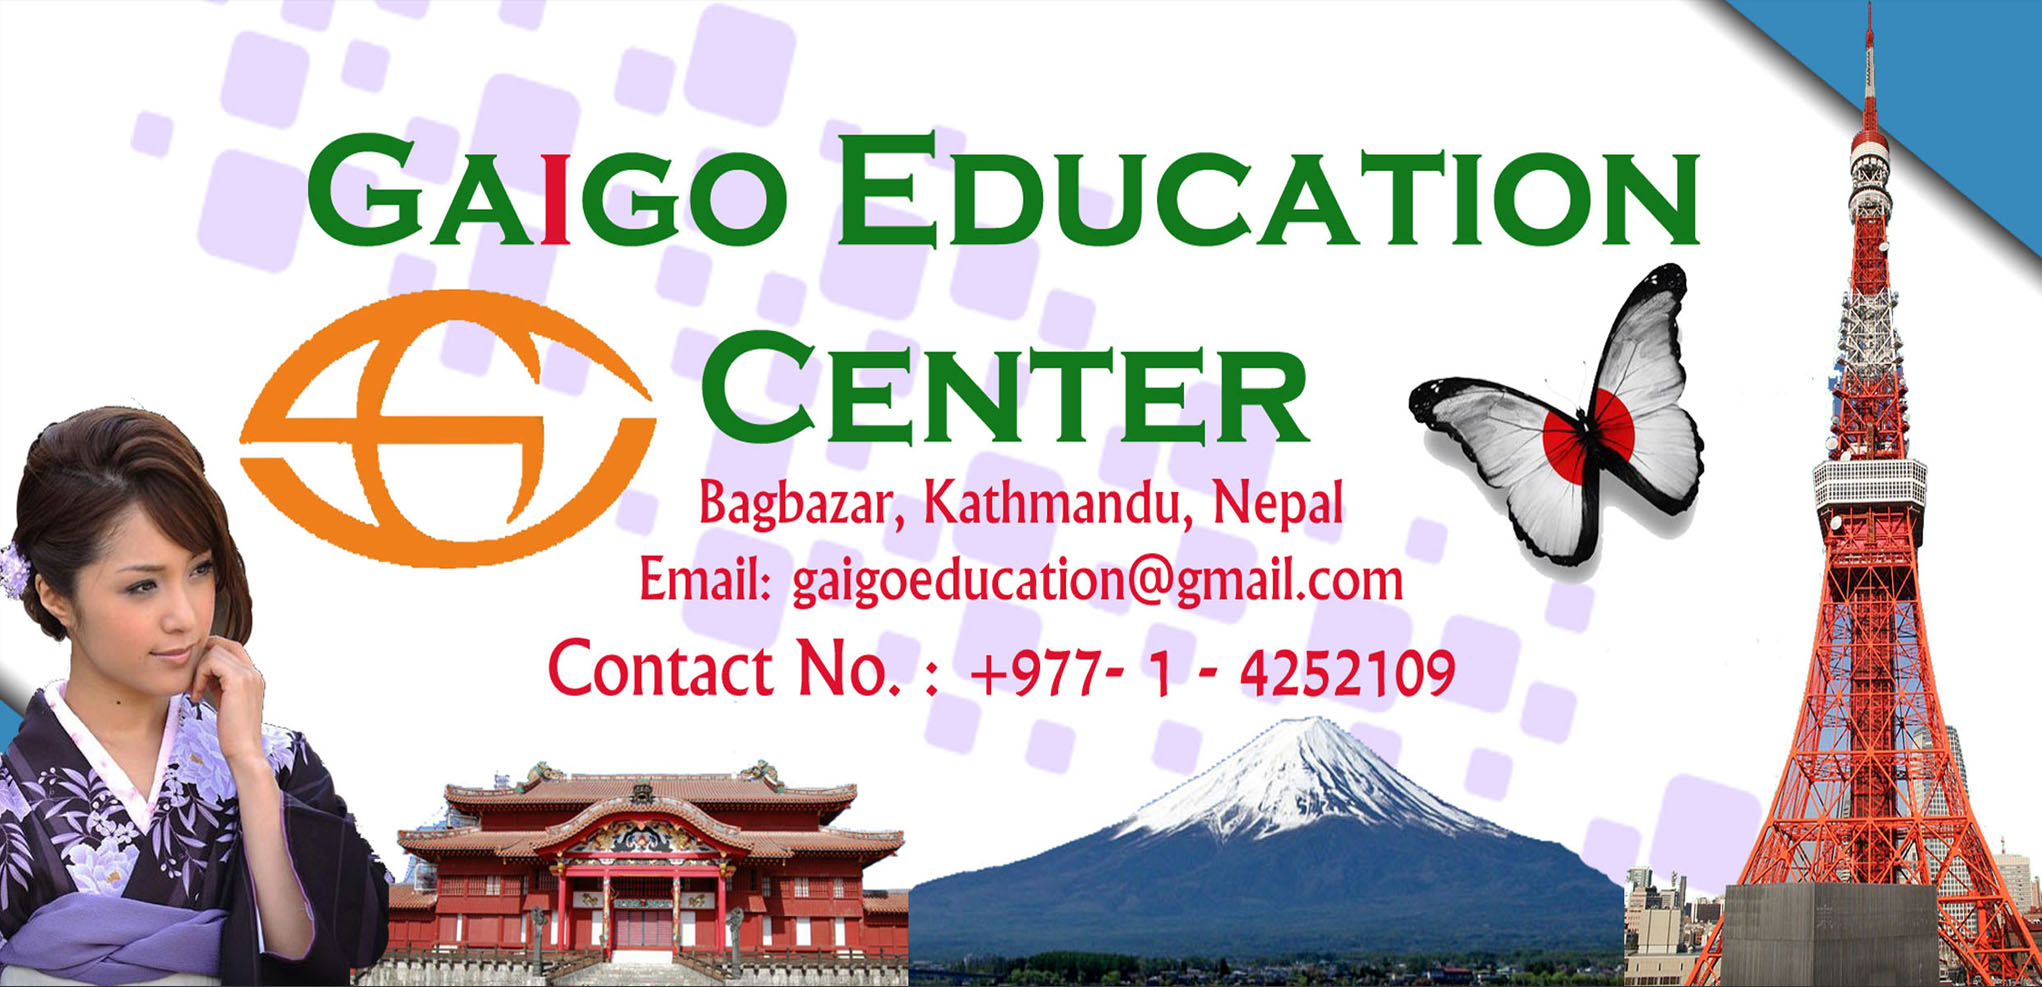 Gaigo Education Center